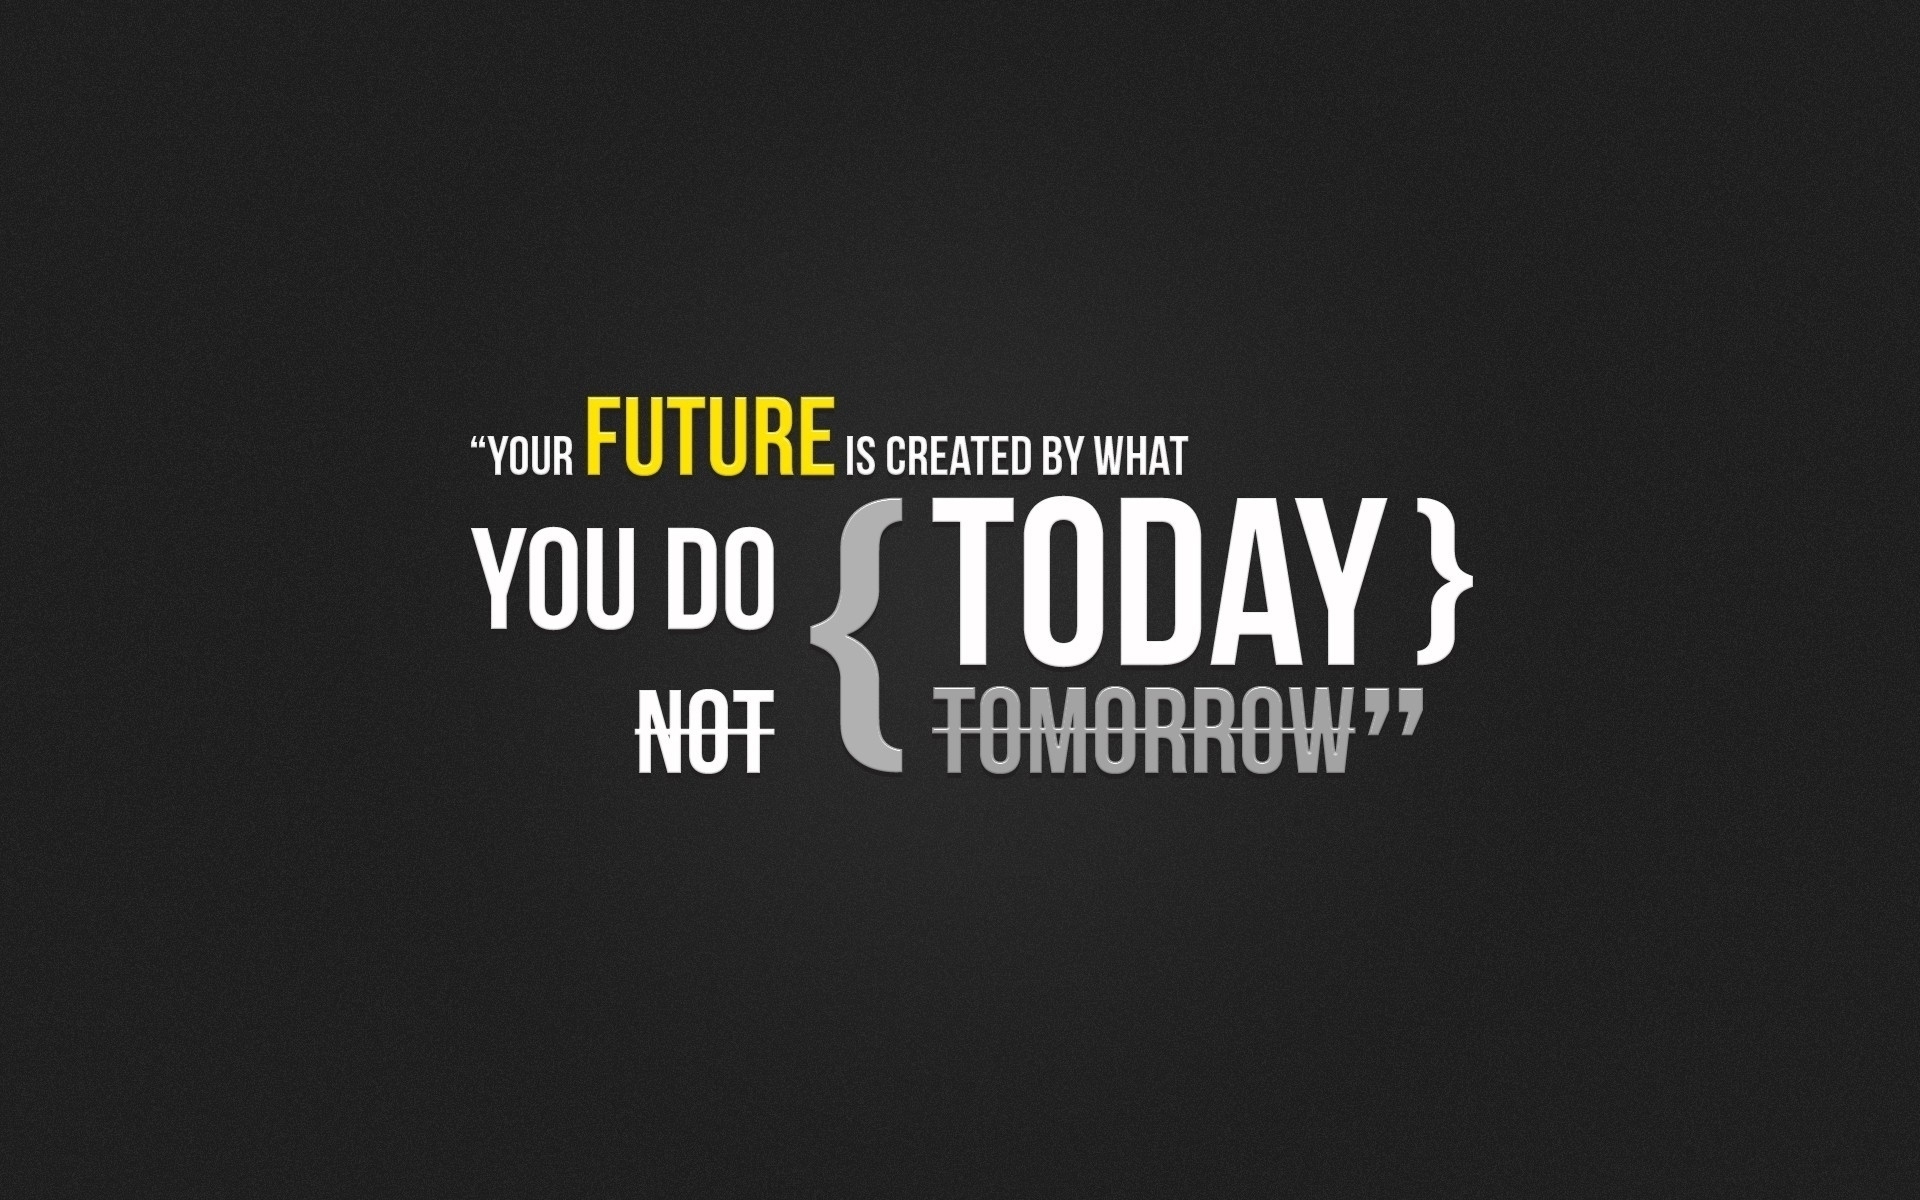 [Image] Your Future Is Created By What You Do Today… Not Tomorrow